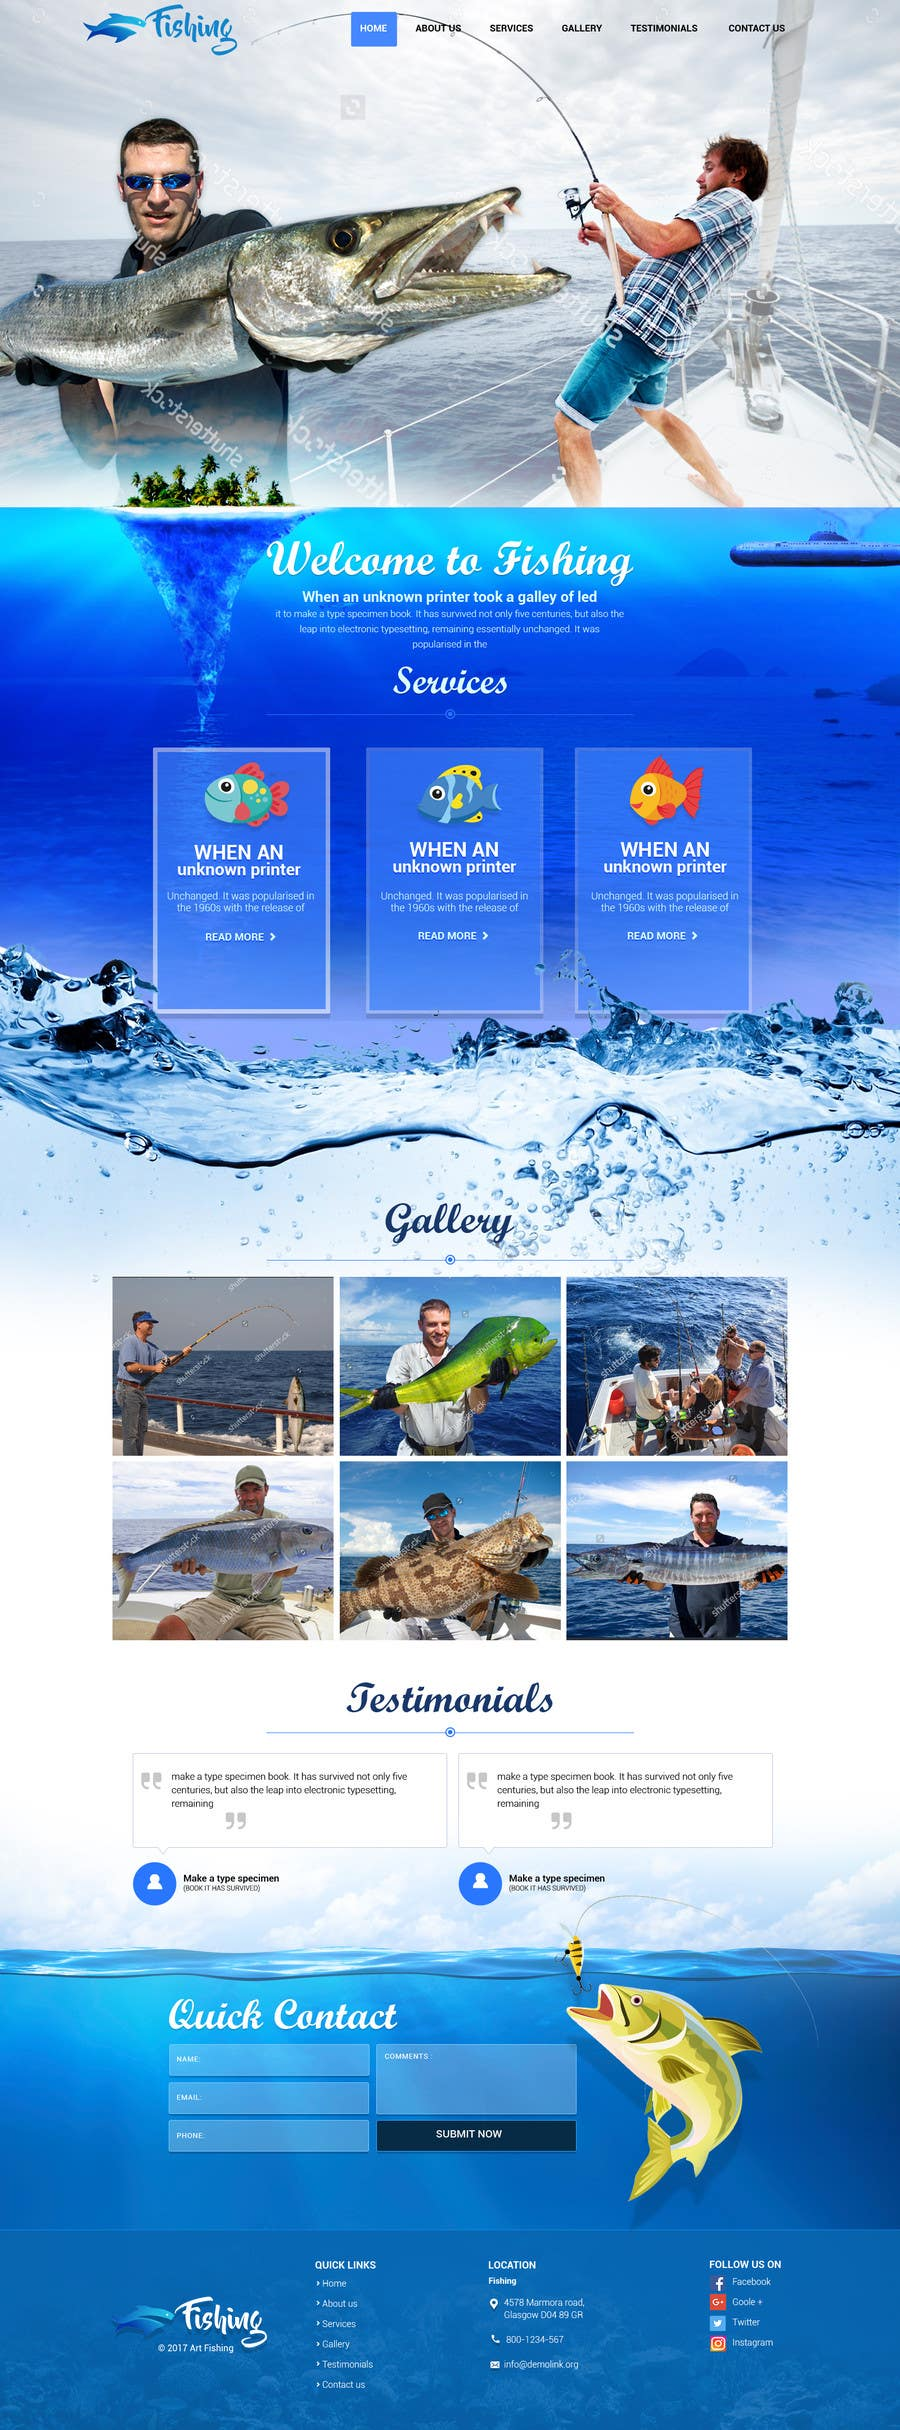 Contest Entry #8 for Design a Website Template with a Fishing Theme